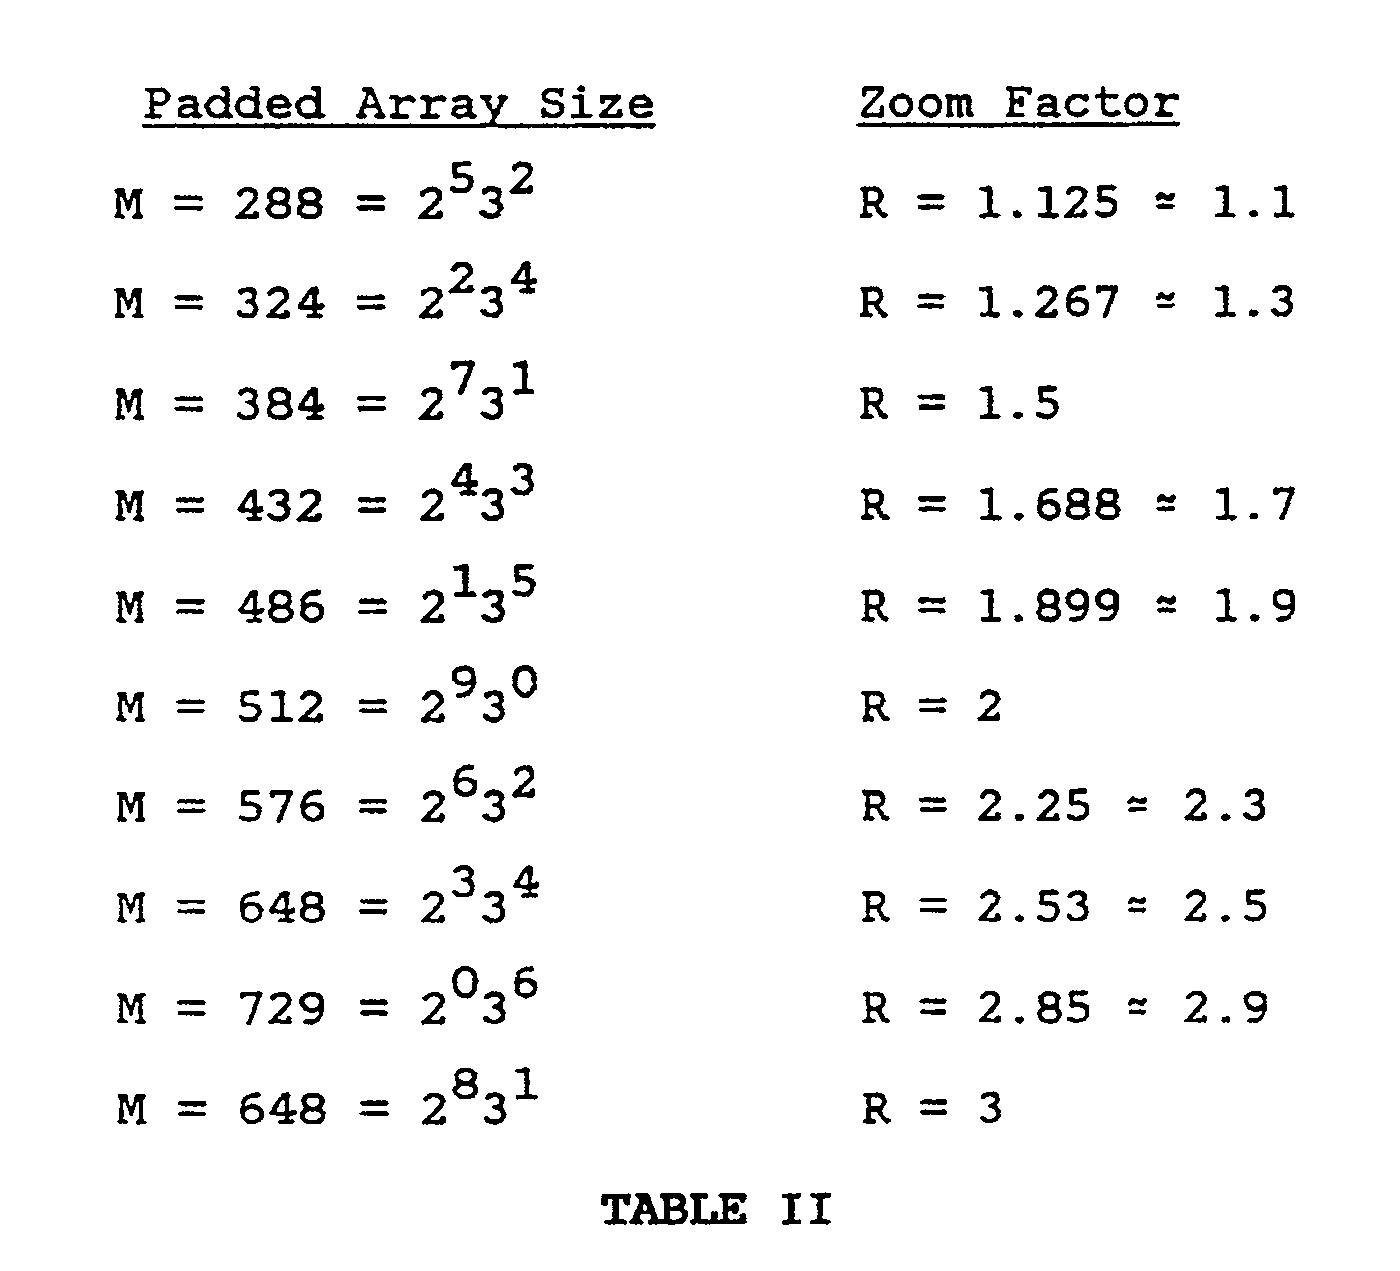 worksheet List Of Factors patent ep0447039a2 resizing mri images using fourier assuming n 256 the following table ii below lists all of possible zoom factors r 1 3 and corresponding subset even inte